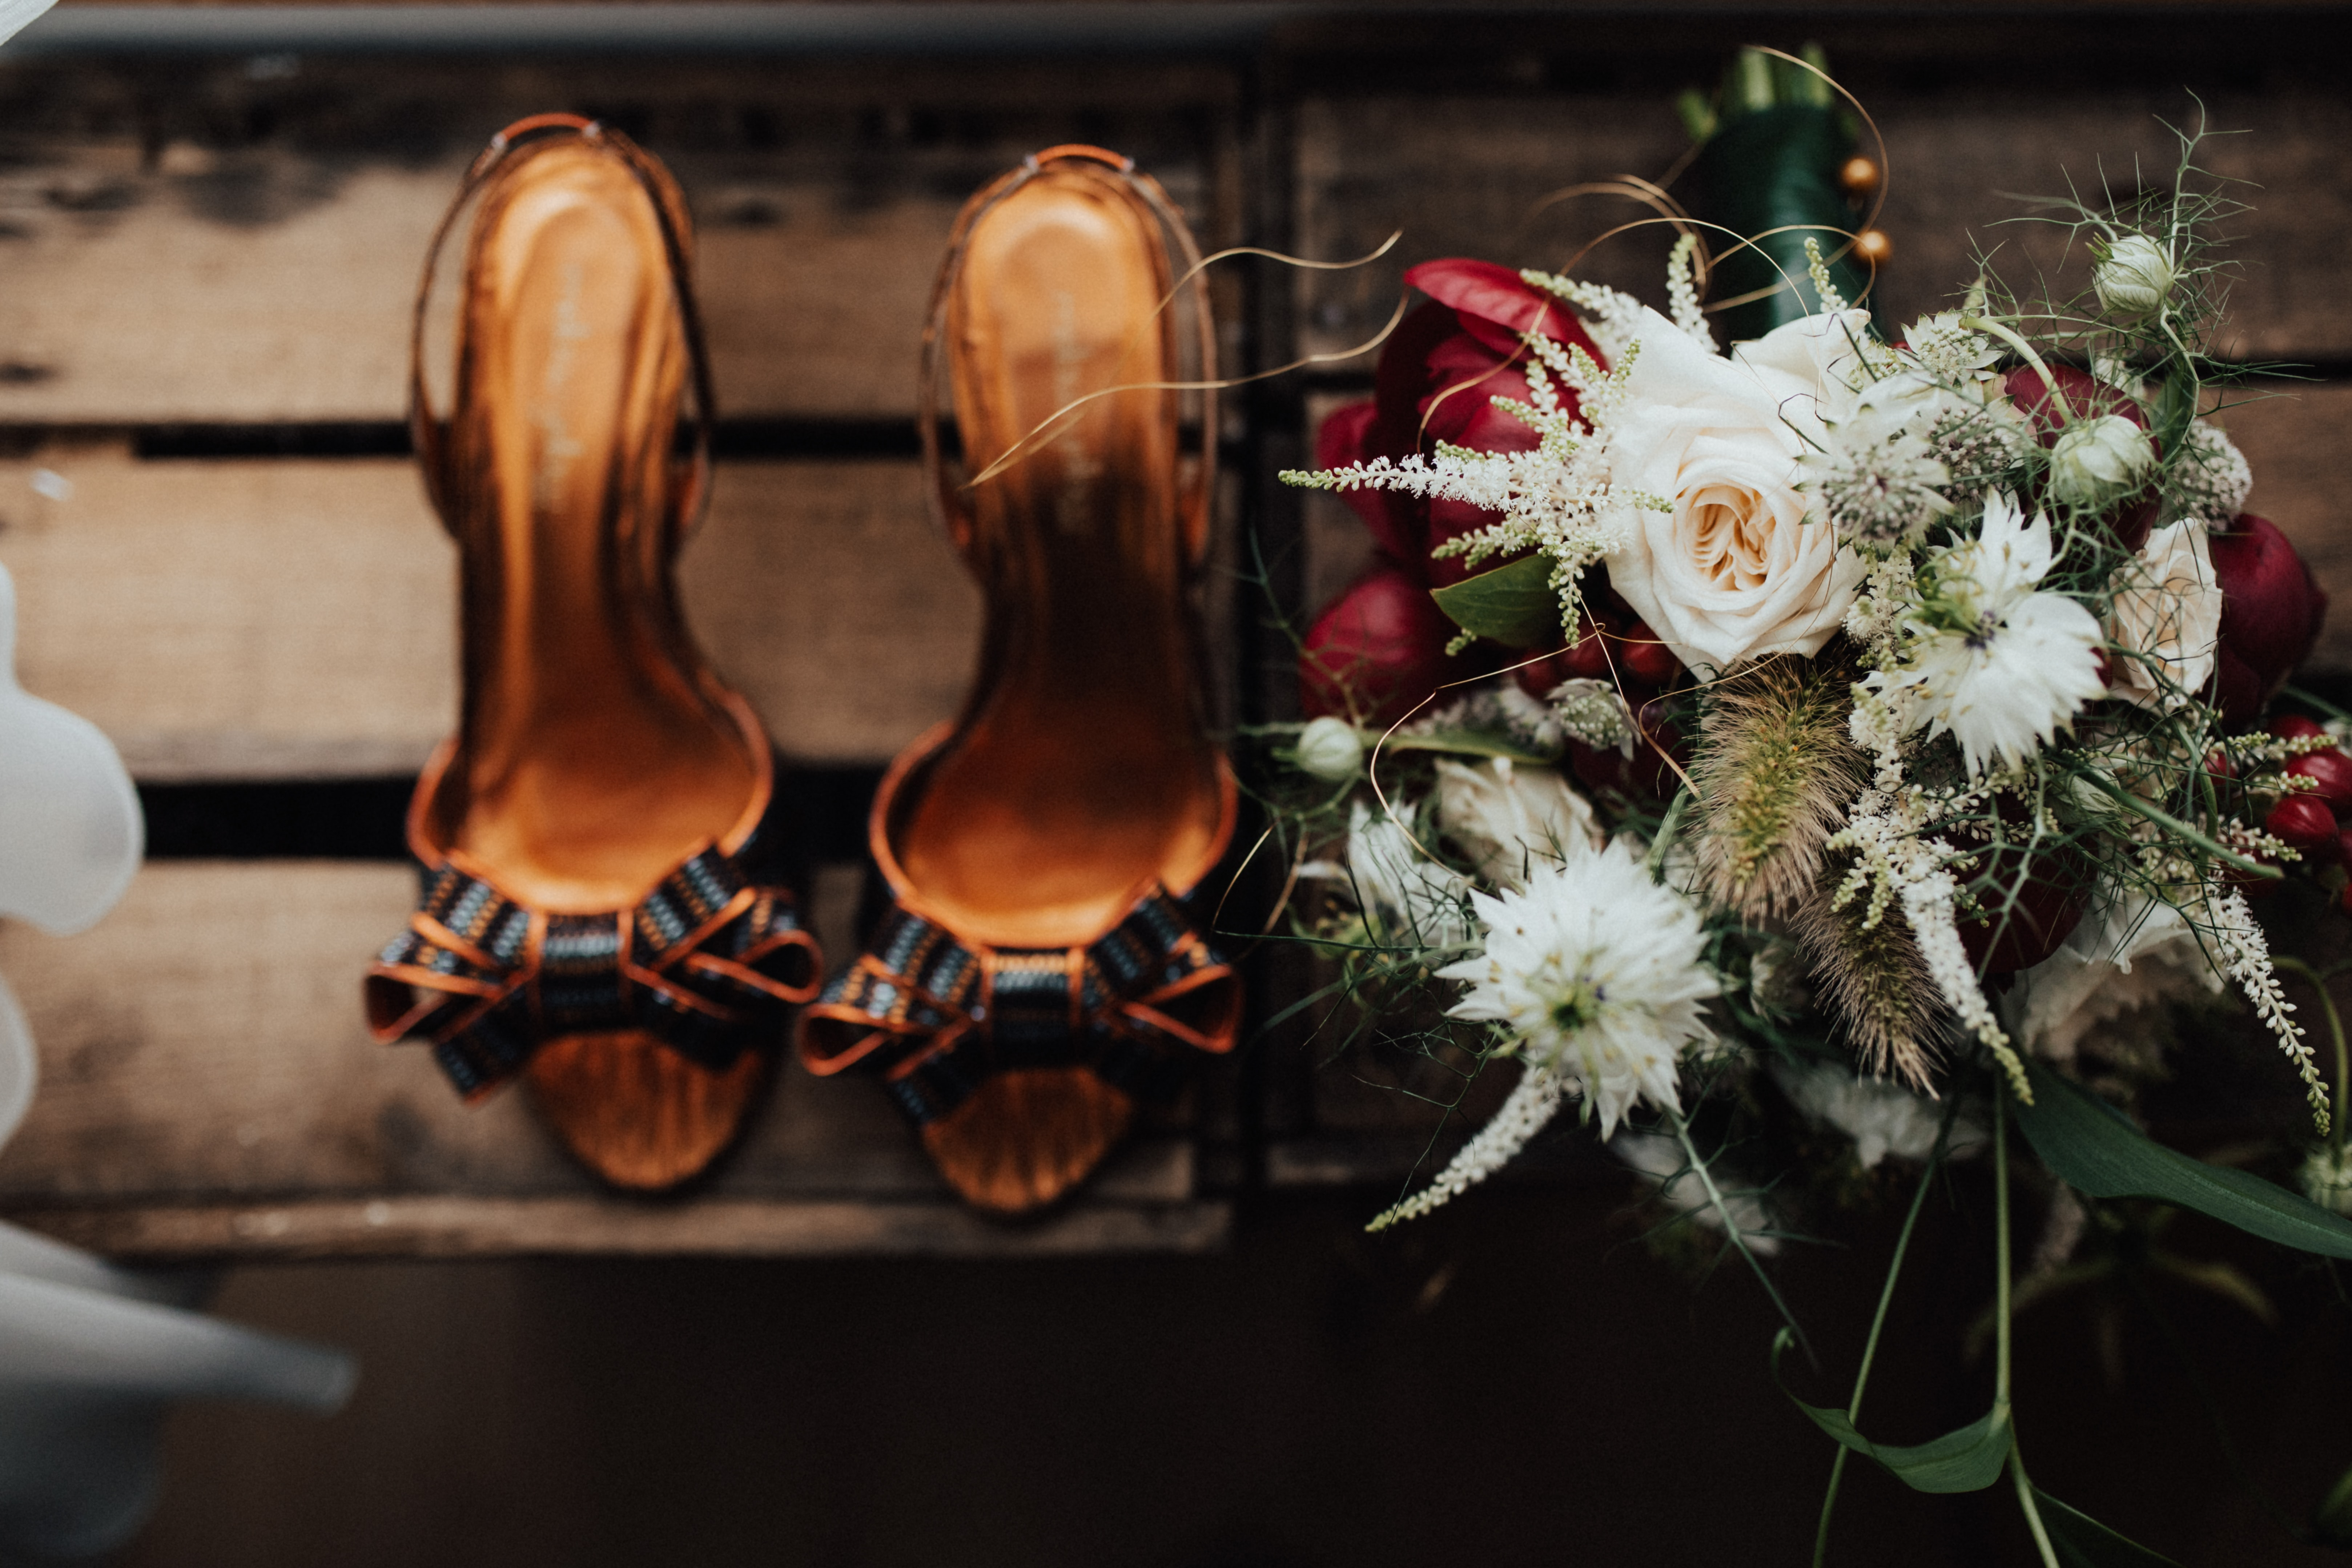 pair of brown heels near white petaled flowers